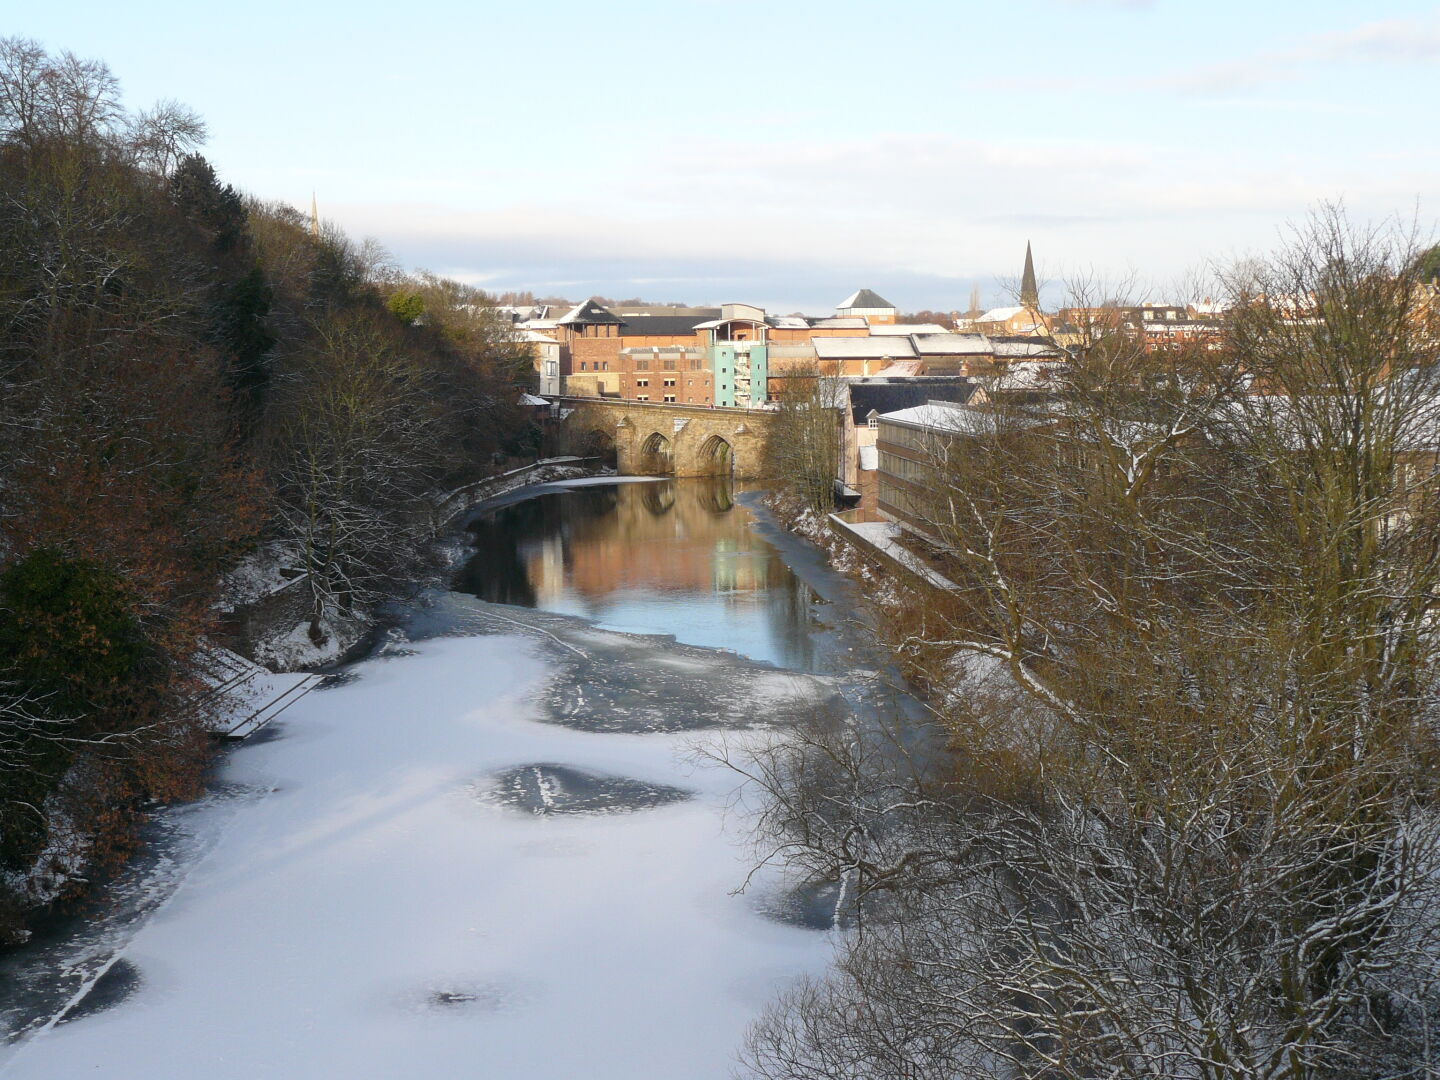 Durham seems to sleep under the snow (but the quiet is probably due to the fact that most students have left the town for the Christmas holidays).